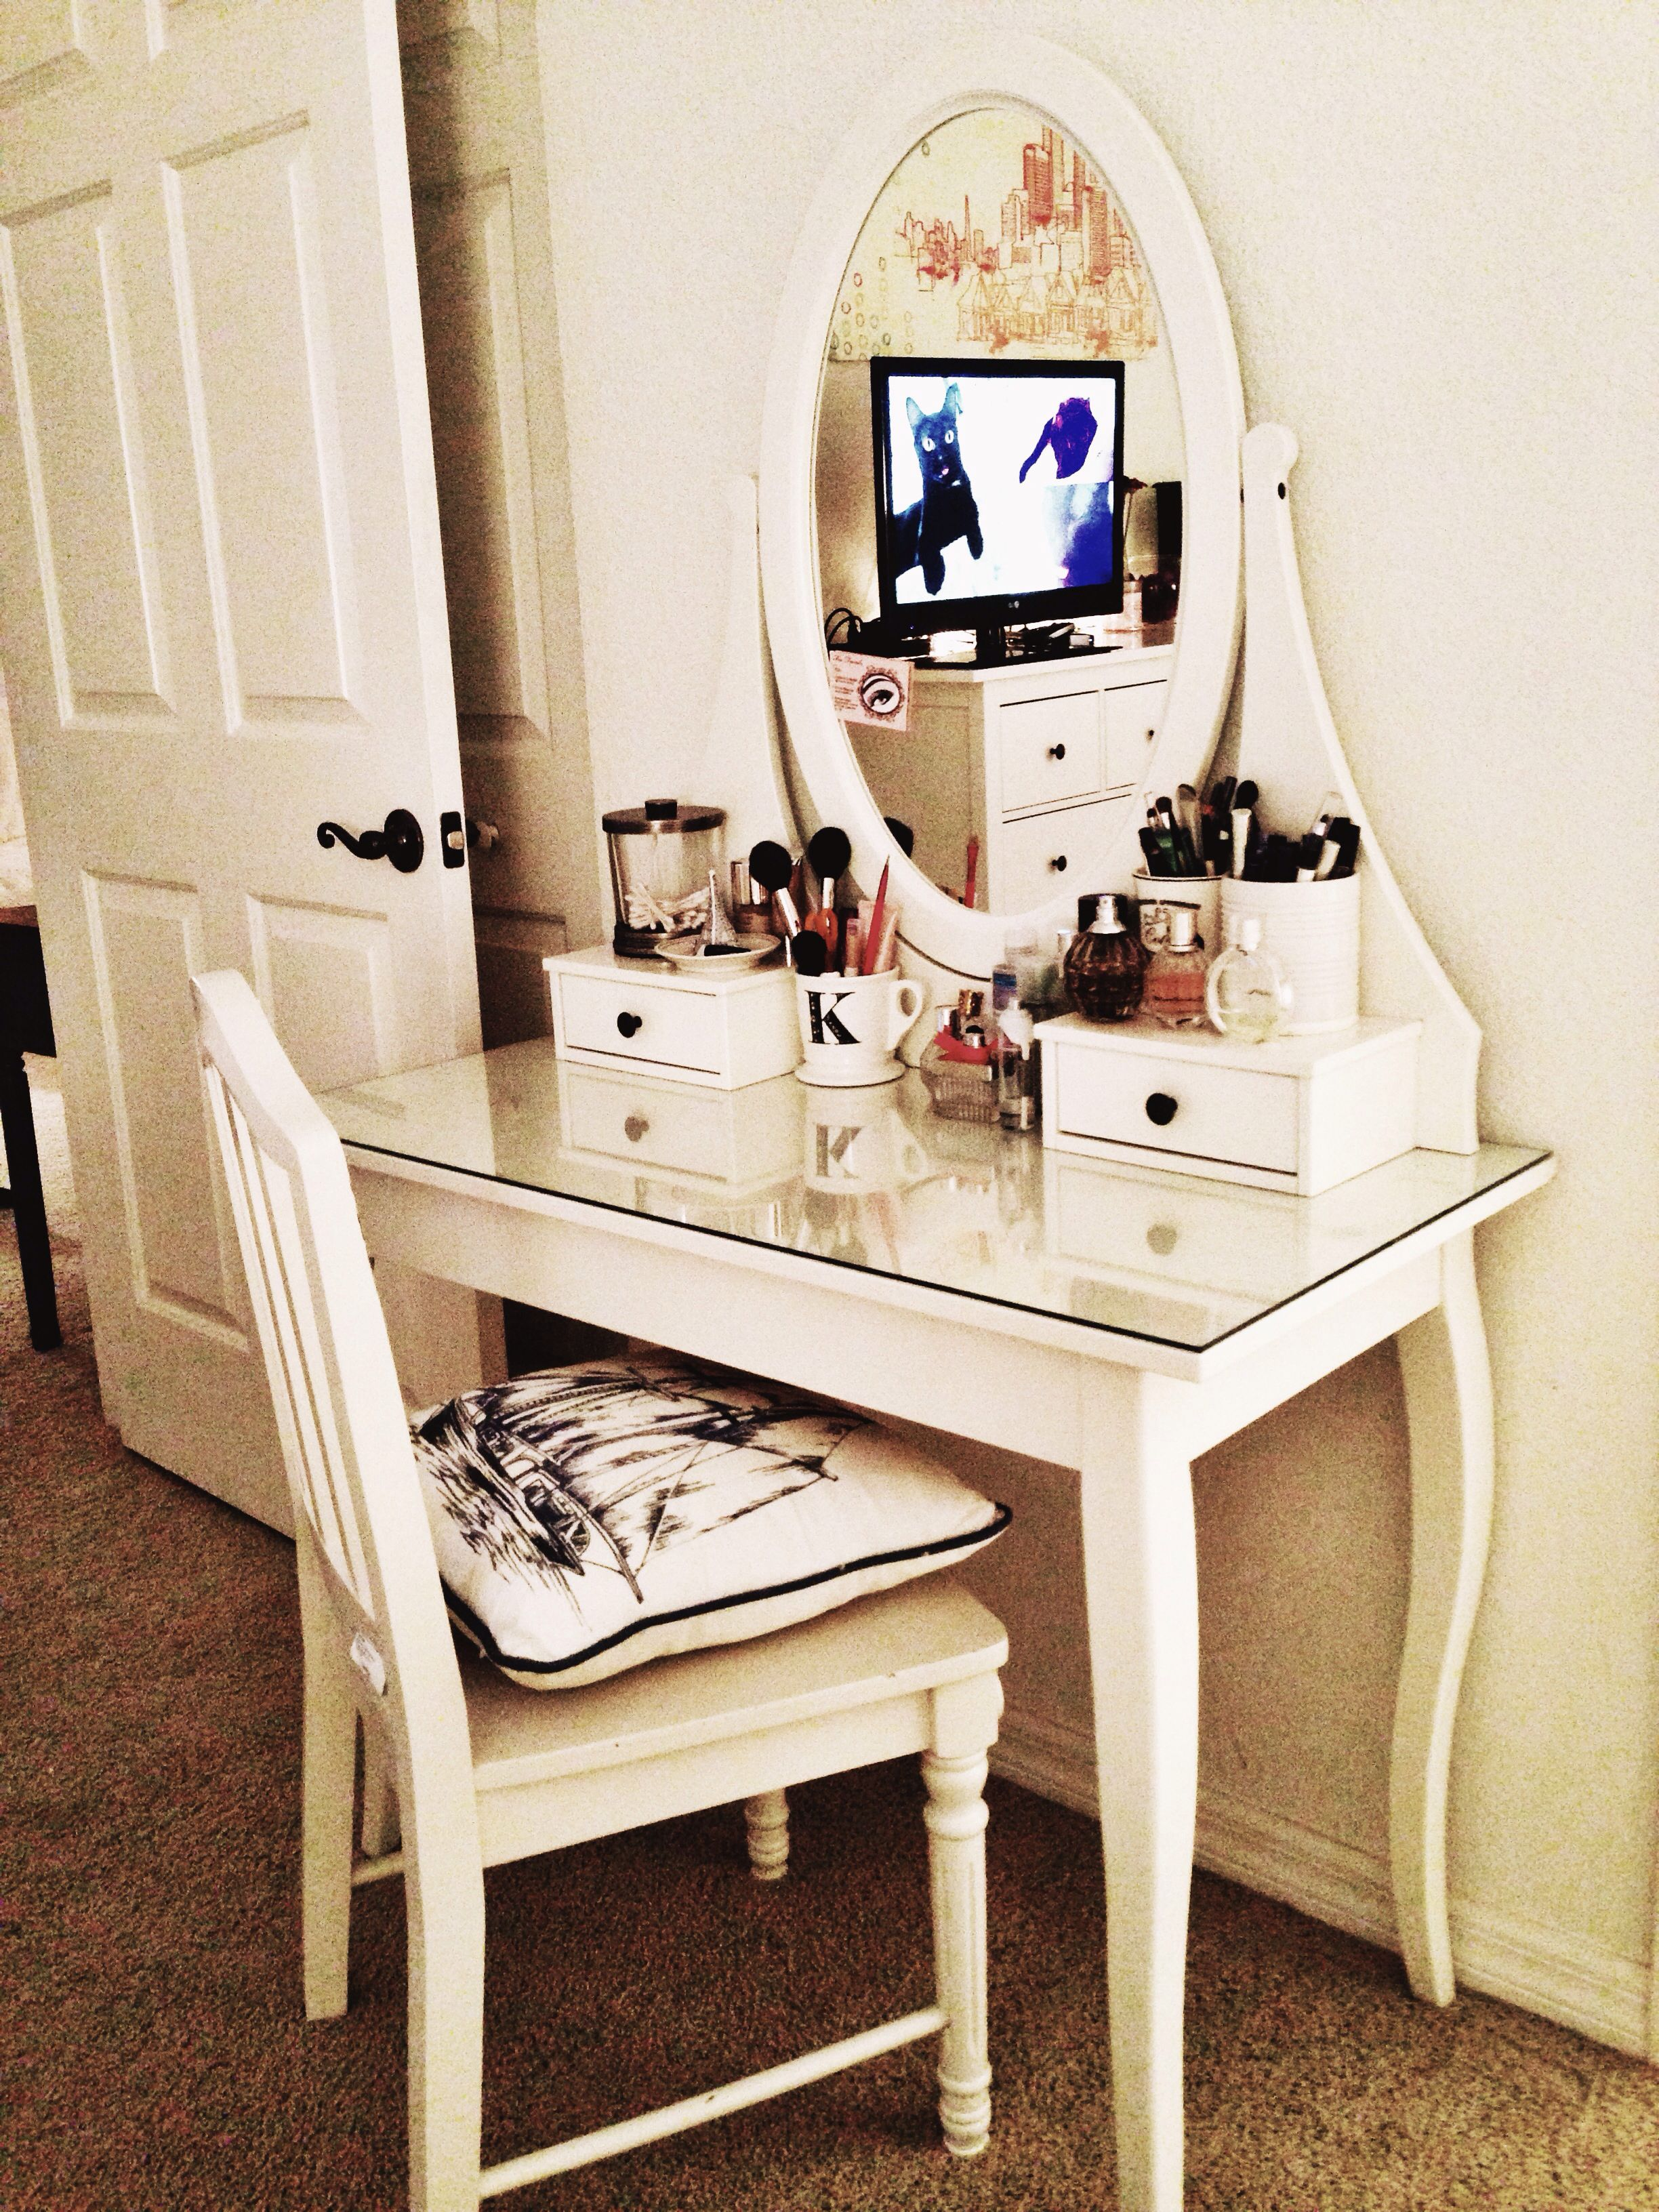 Pin By Anya Chamberlin On Home Is Where The Heart Is Ikea Vanity Ikea Vanity Table Bedroom Makeup Vanity